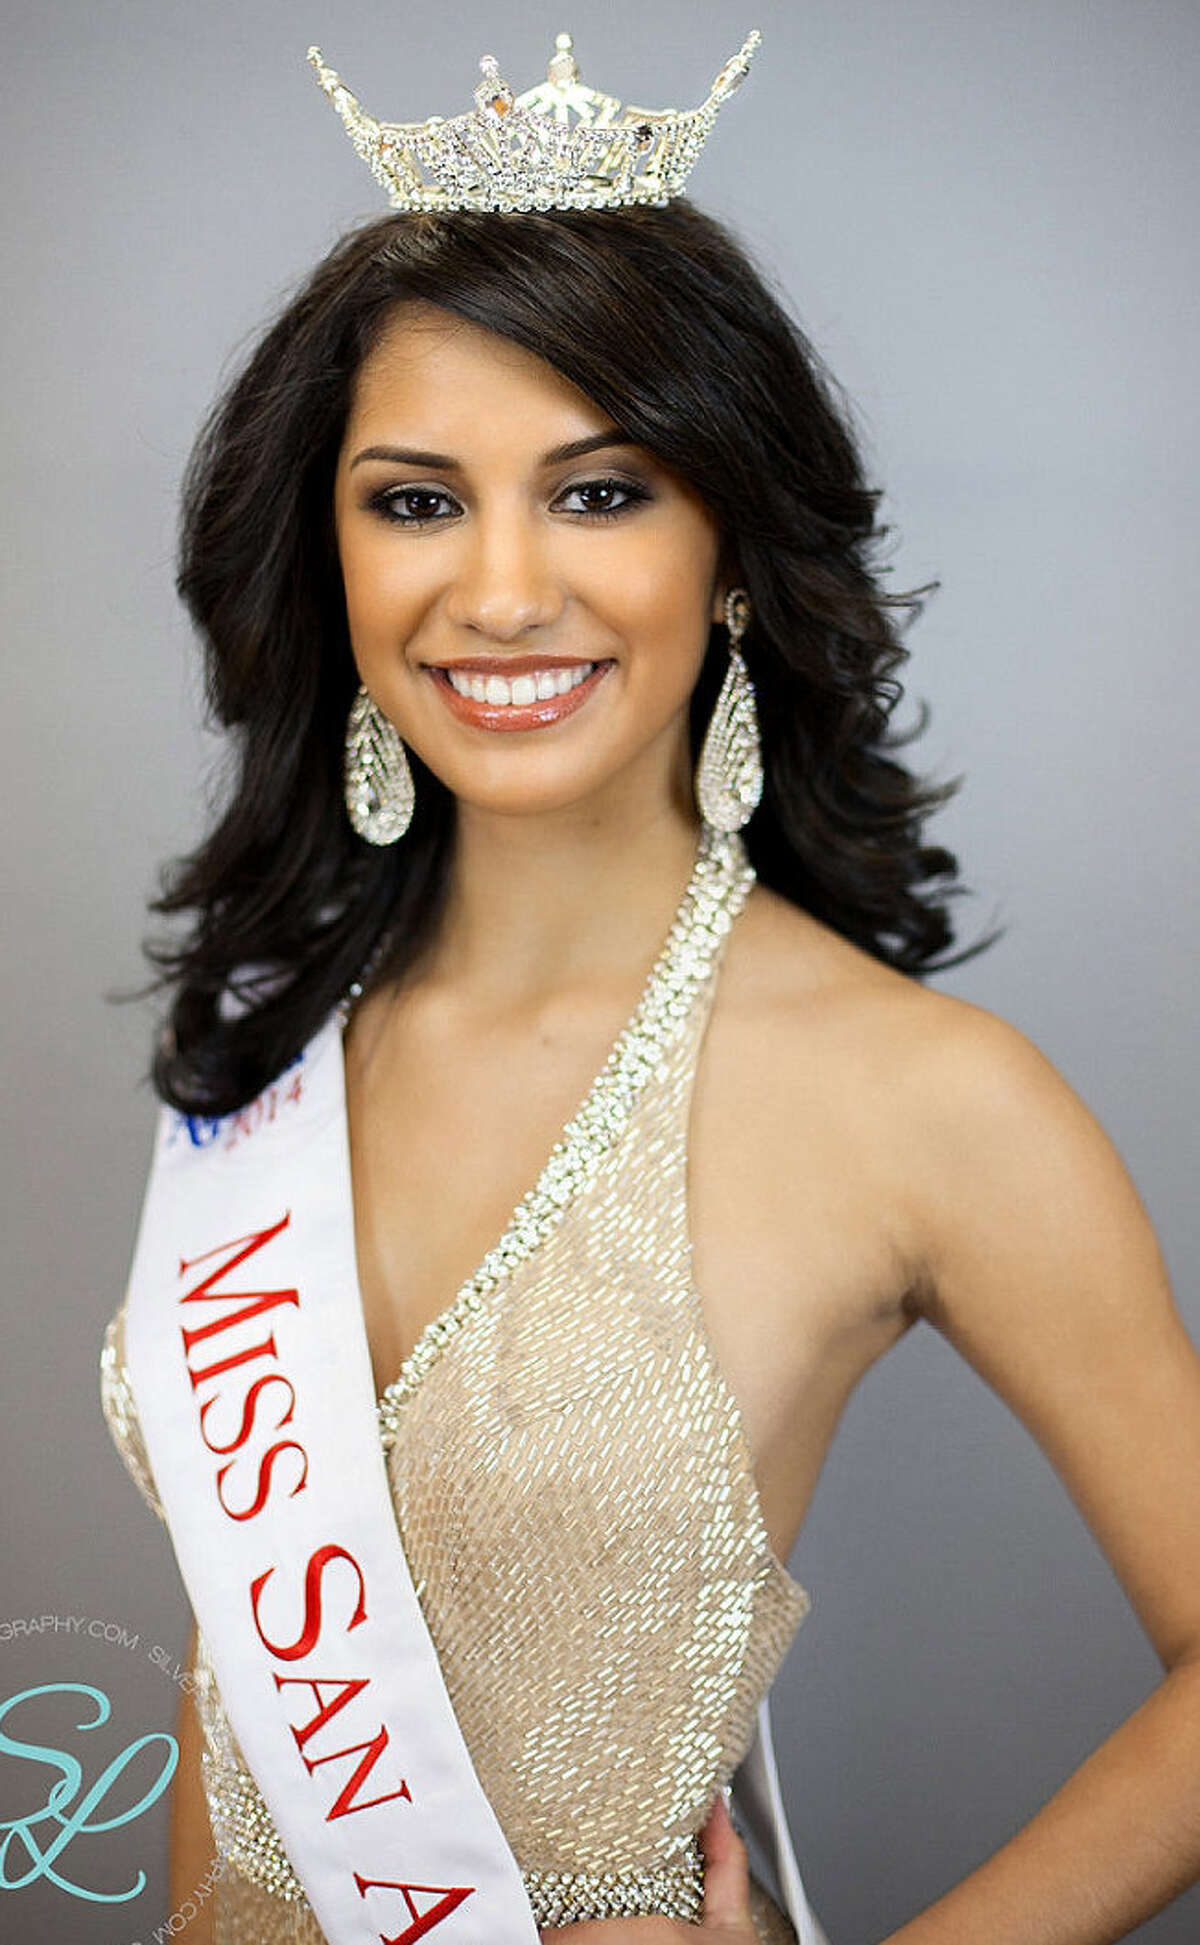 Deidra Angulo is competing for the Miss Texas crown next month.